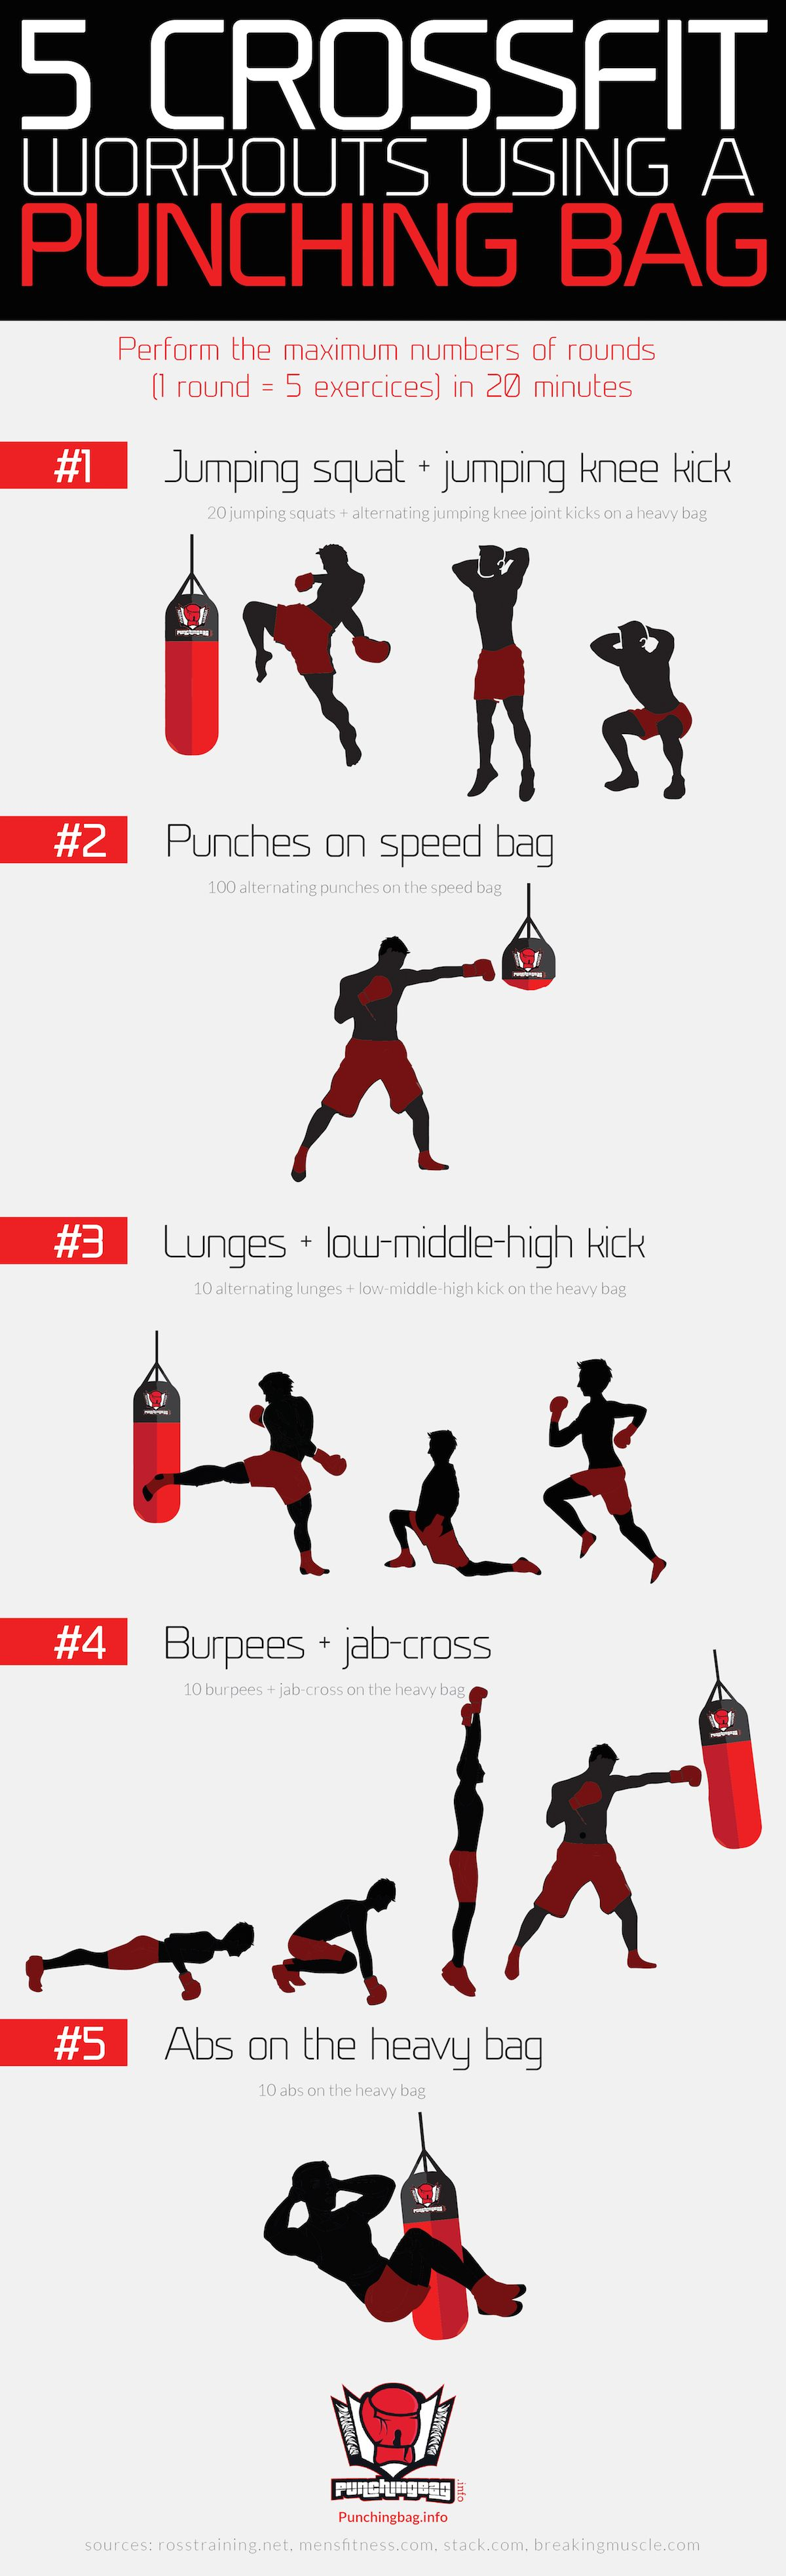 5 Crossfit Workouts Using A Punching Bag By Punchingbag Info